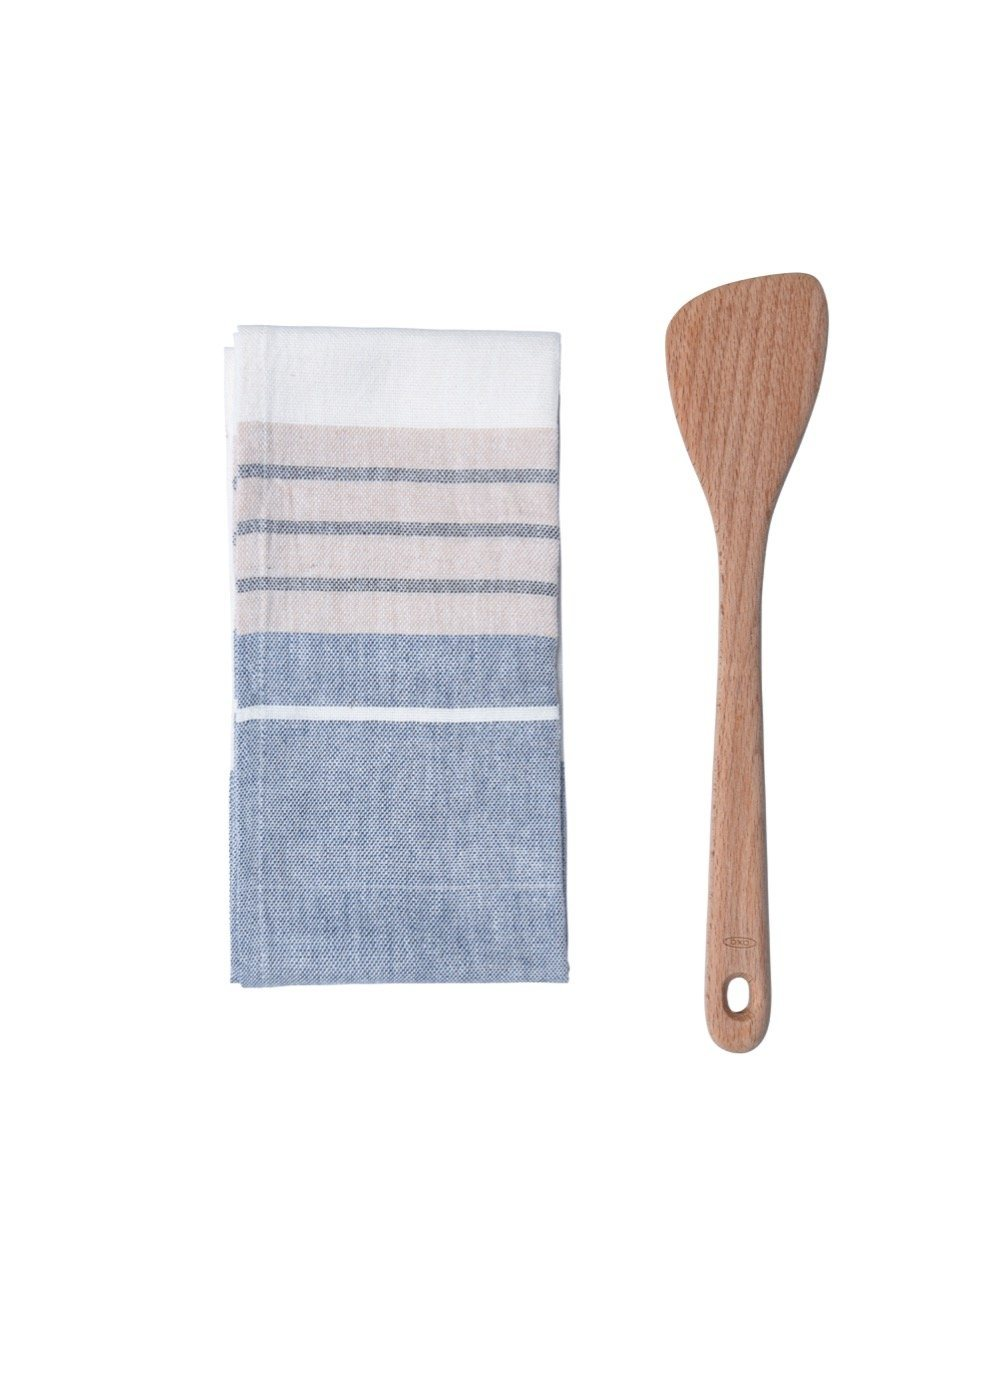 Bloom & Give Pooja Tea Towels - Ivory Kitchen & Tabletop Bloom & Give